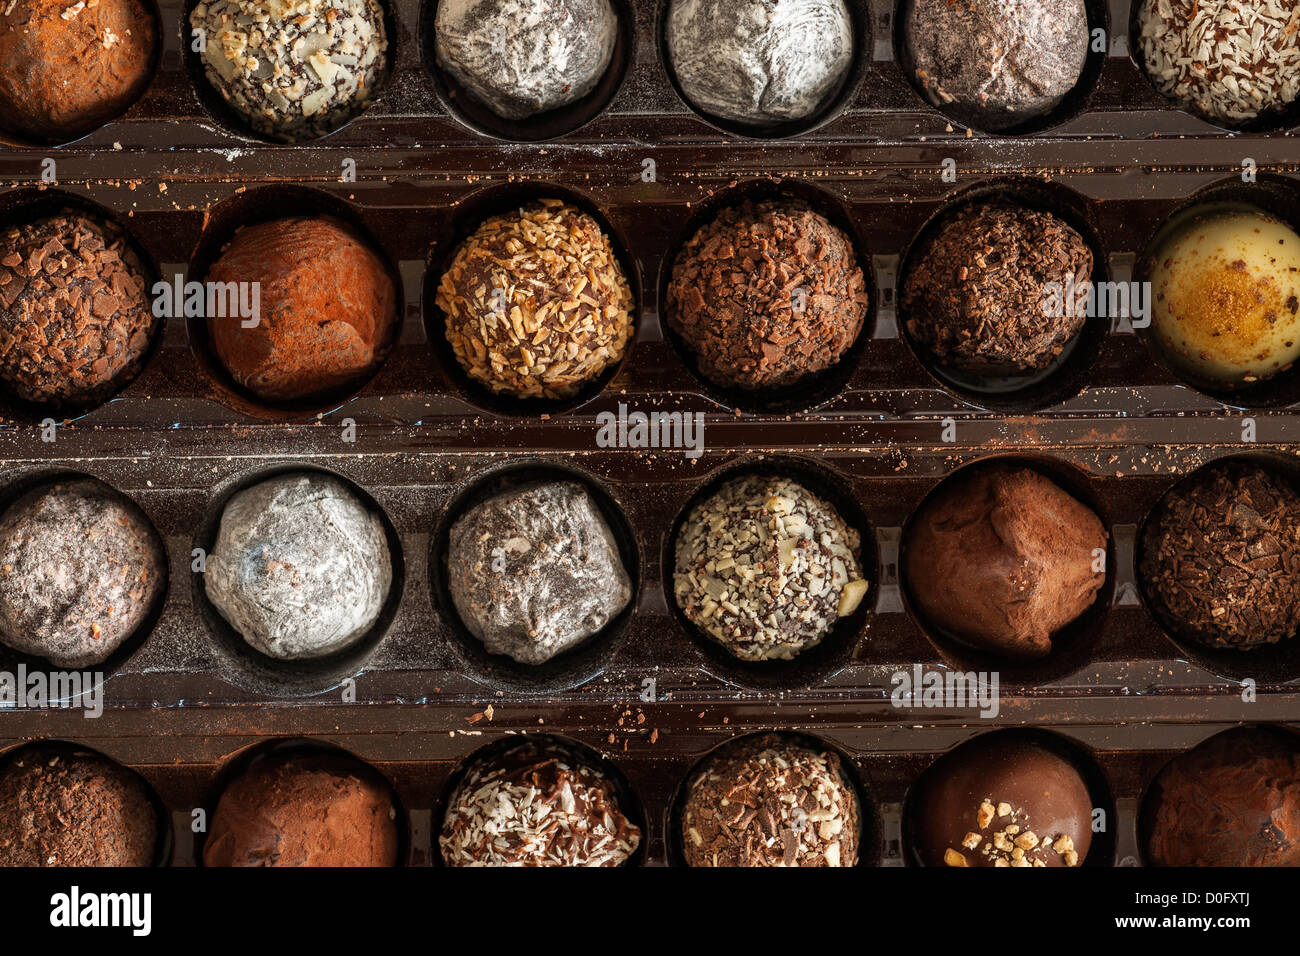 Godiva Chocolates Stock Photos & Godiva Chocolates Stock Images ...